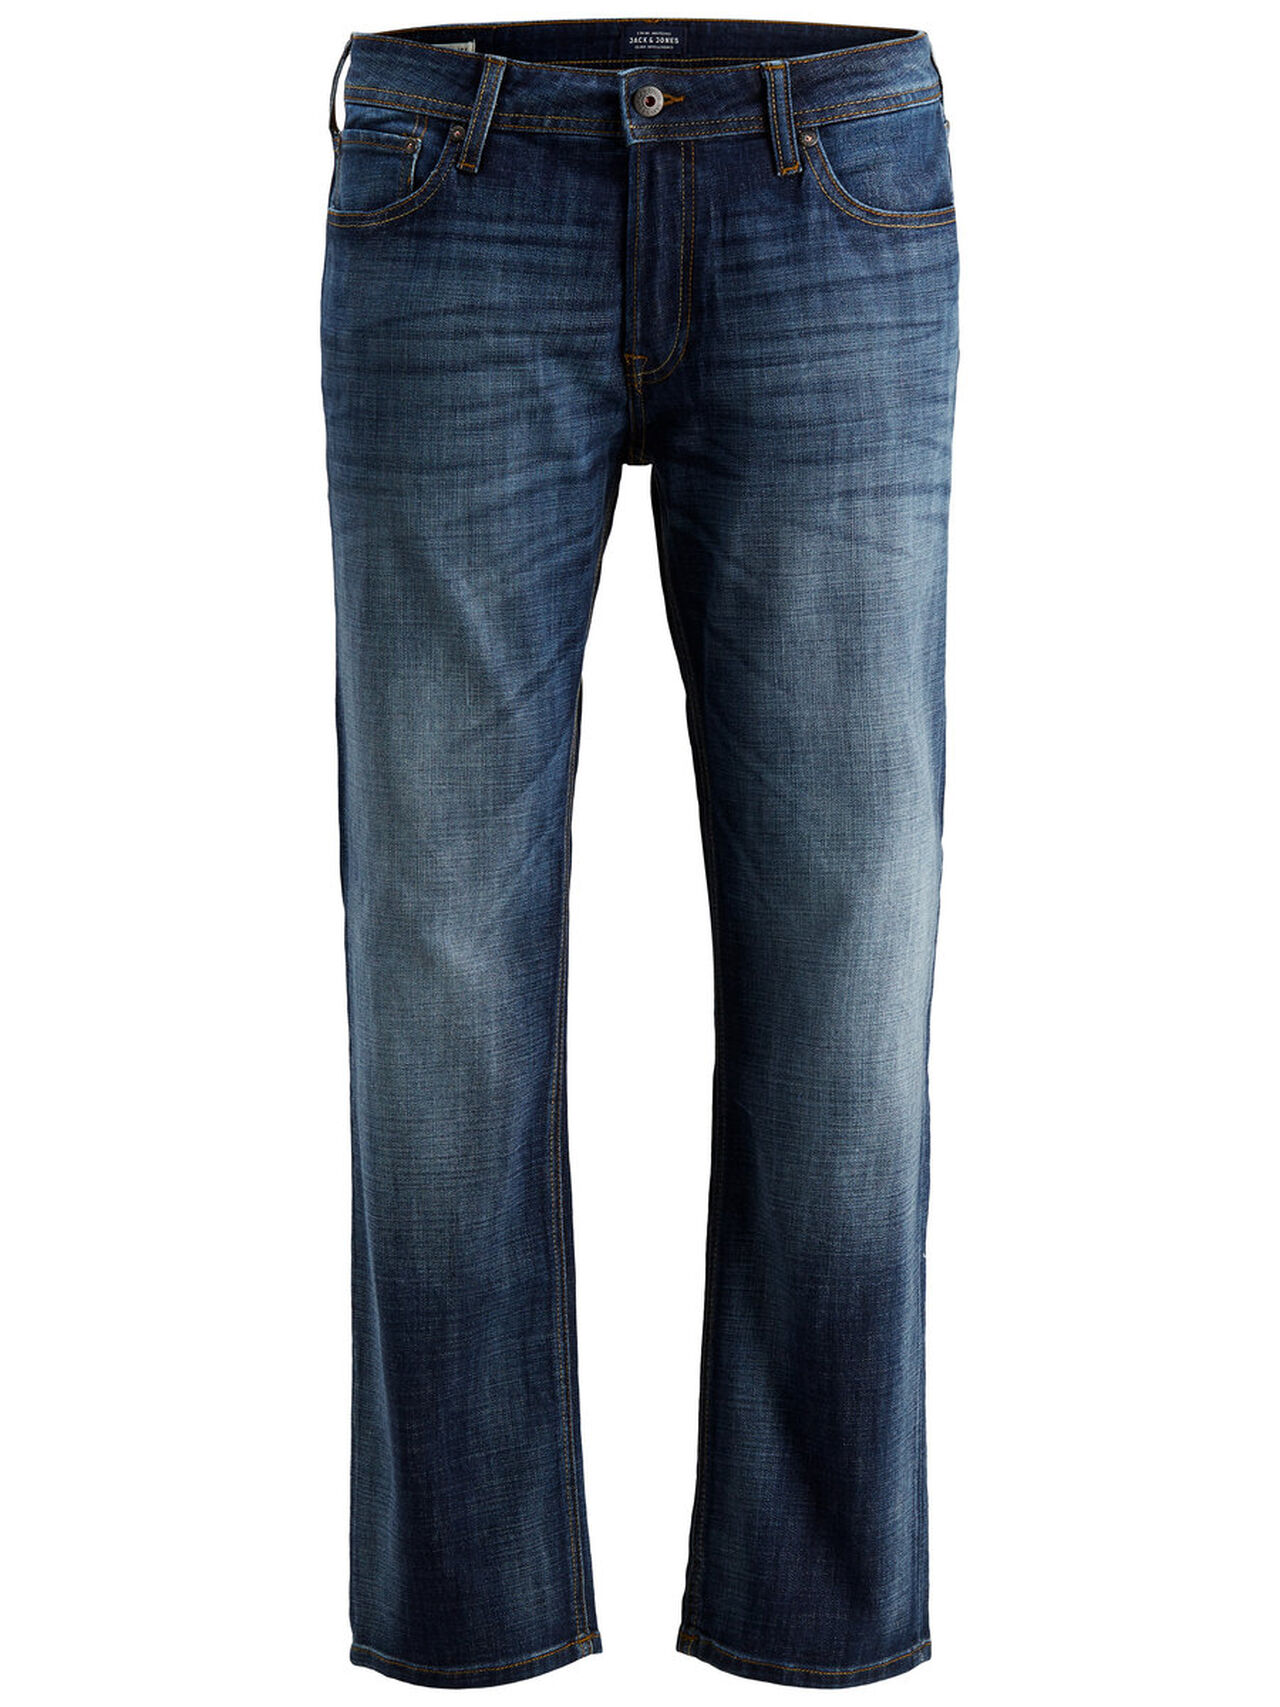 Clark Original Ge 255 Regular Fit Jeans